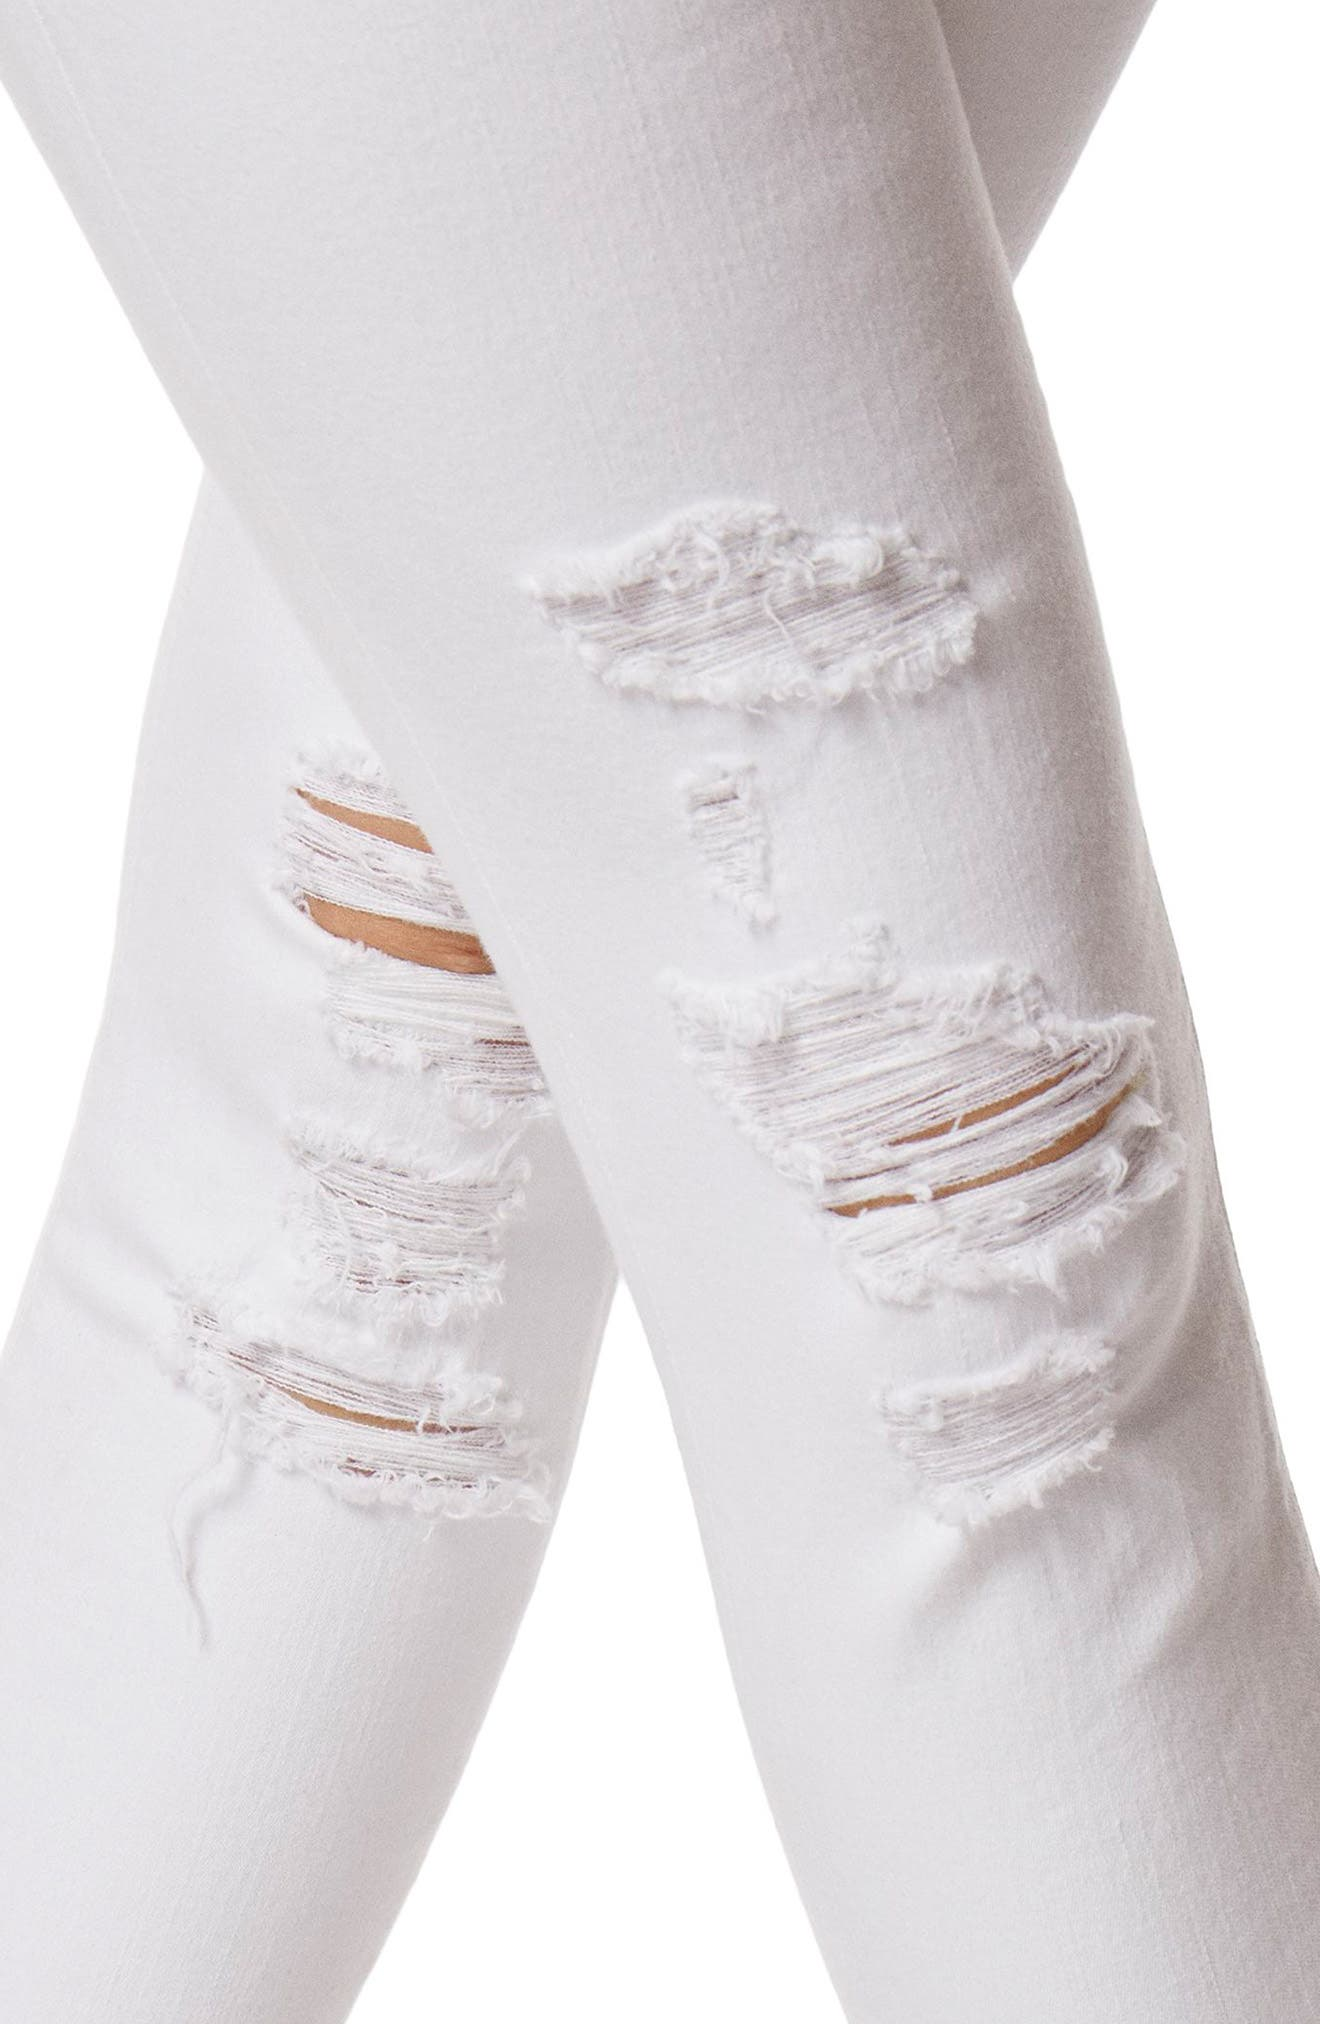 J BRAND, 9326 Low Rise Crop Skinny Jeans, Alternate thumbnail 5, color, DEMENTED WHITE DESTRUCTED